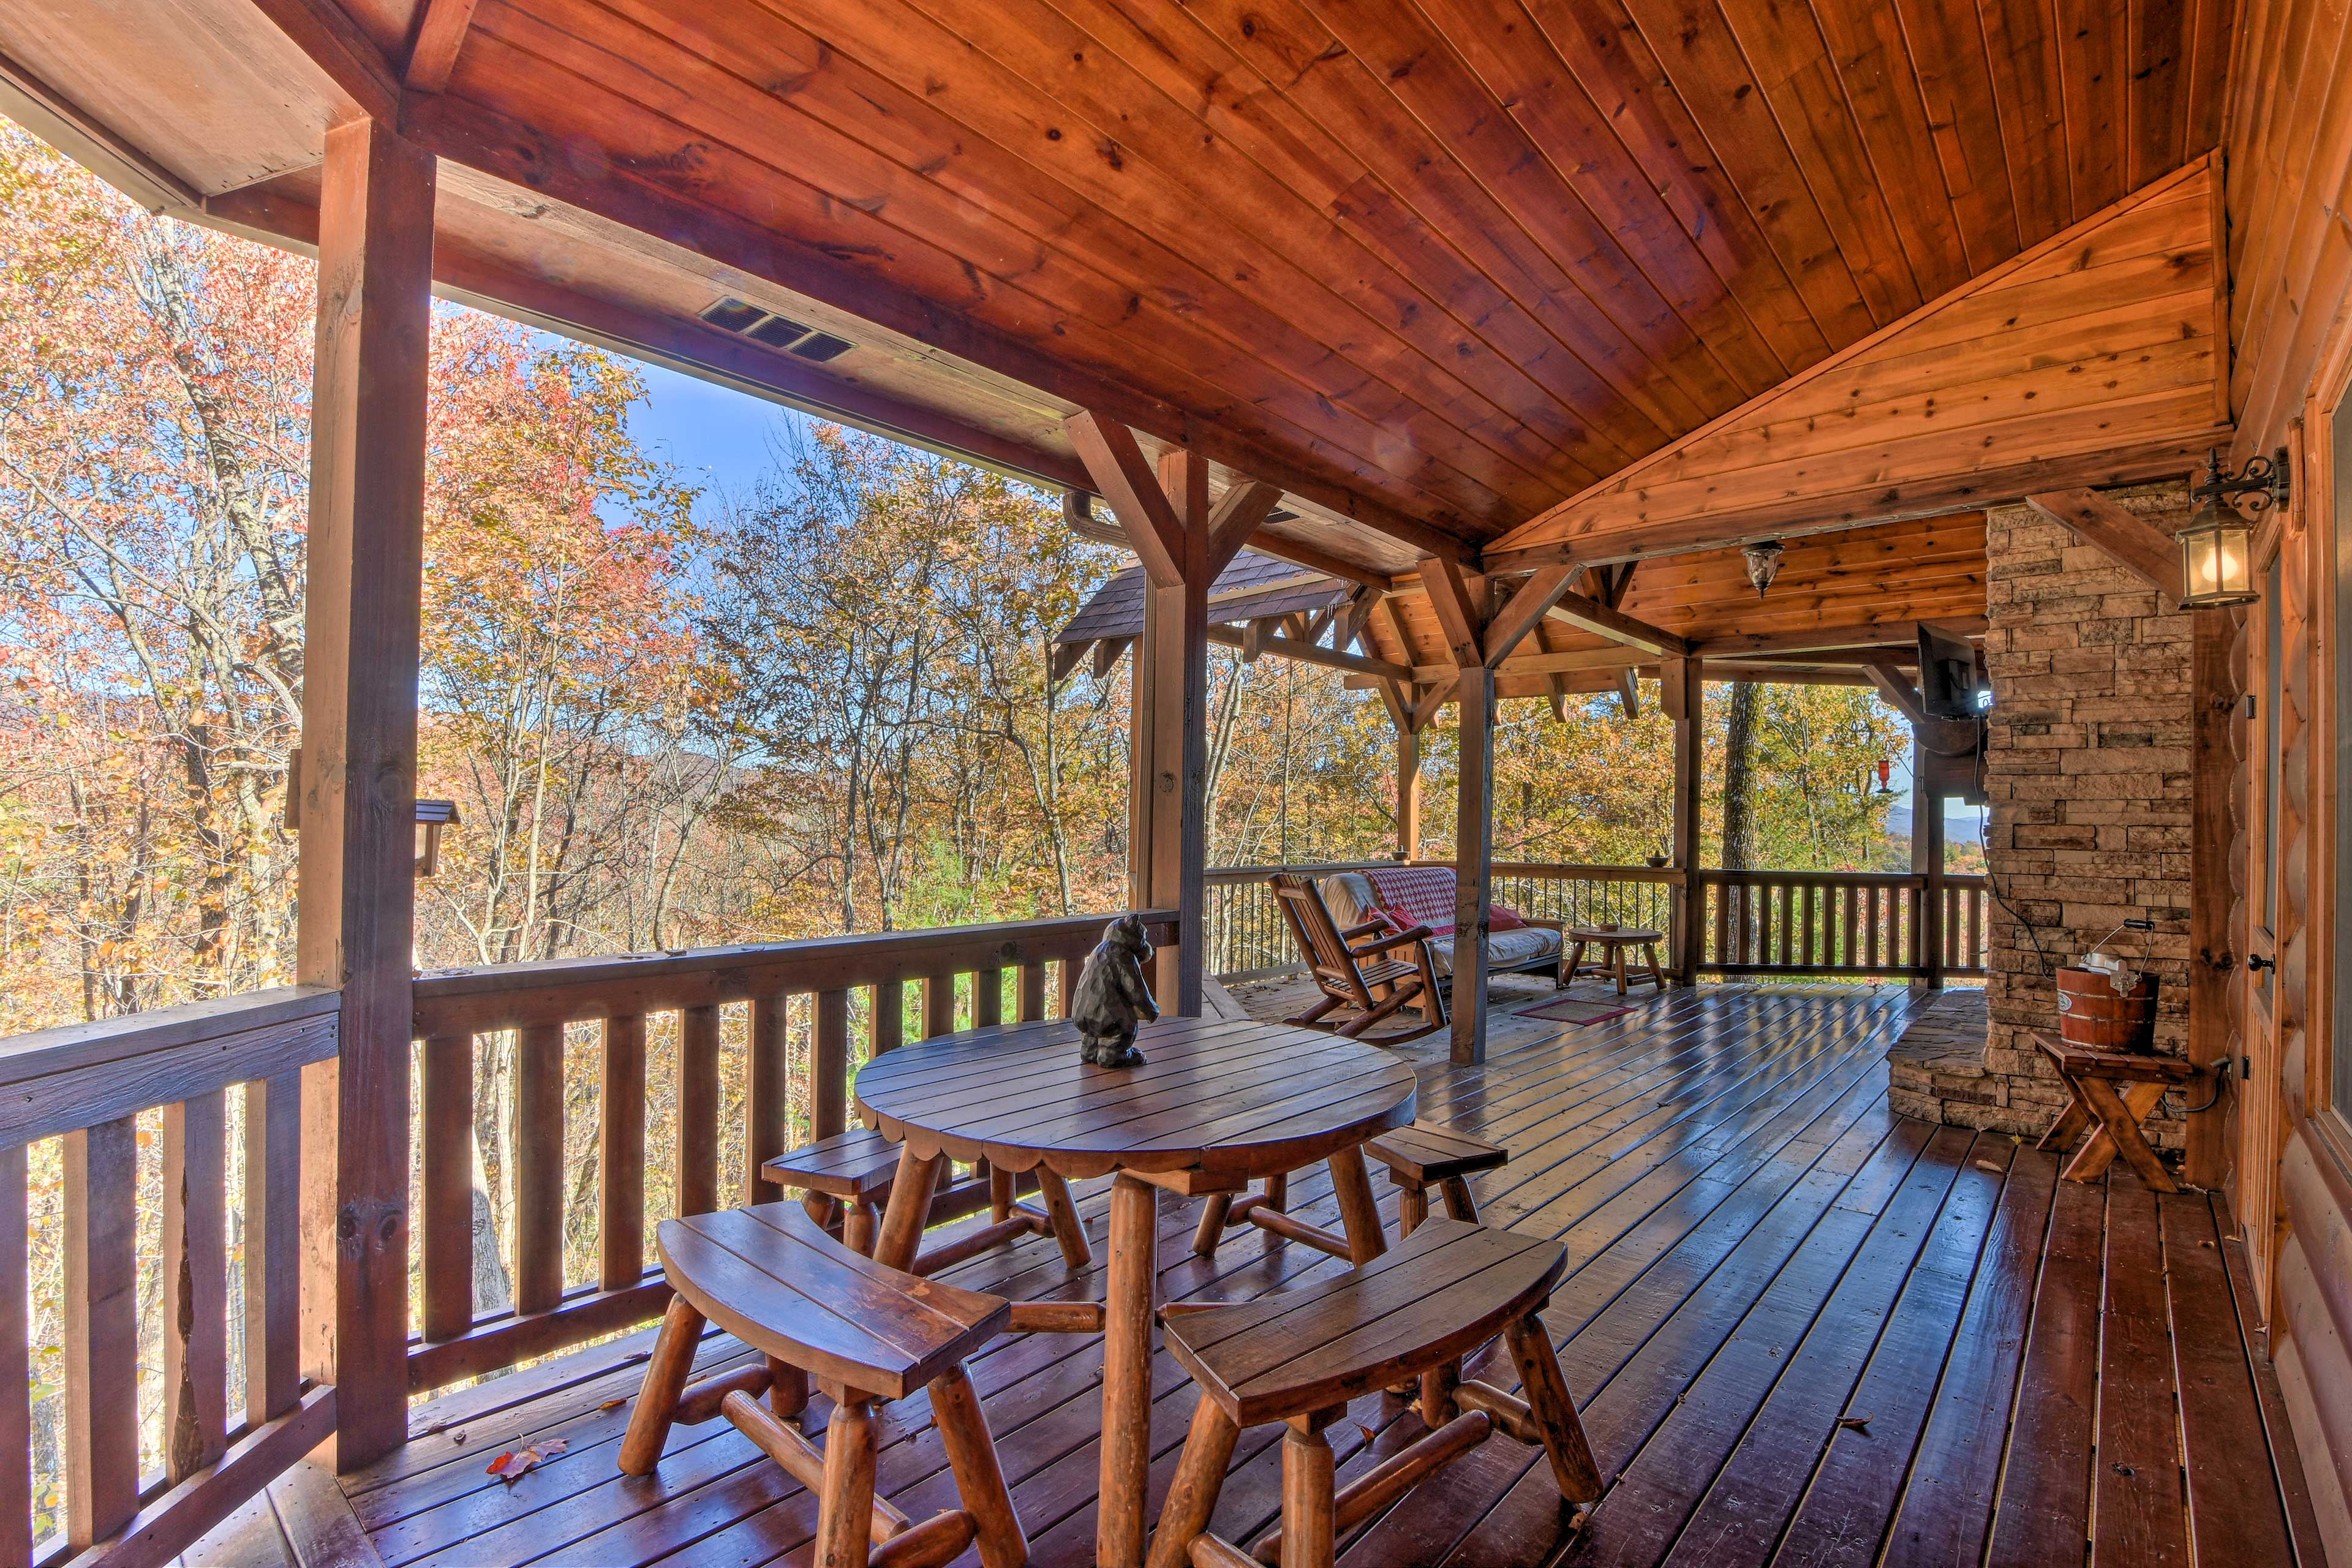 Grill out and dine al fresco on the furnished deck.